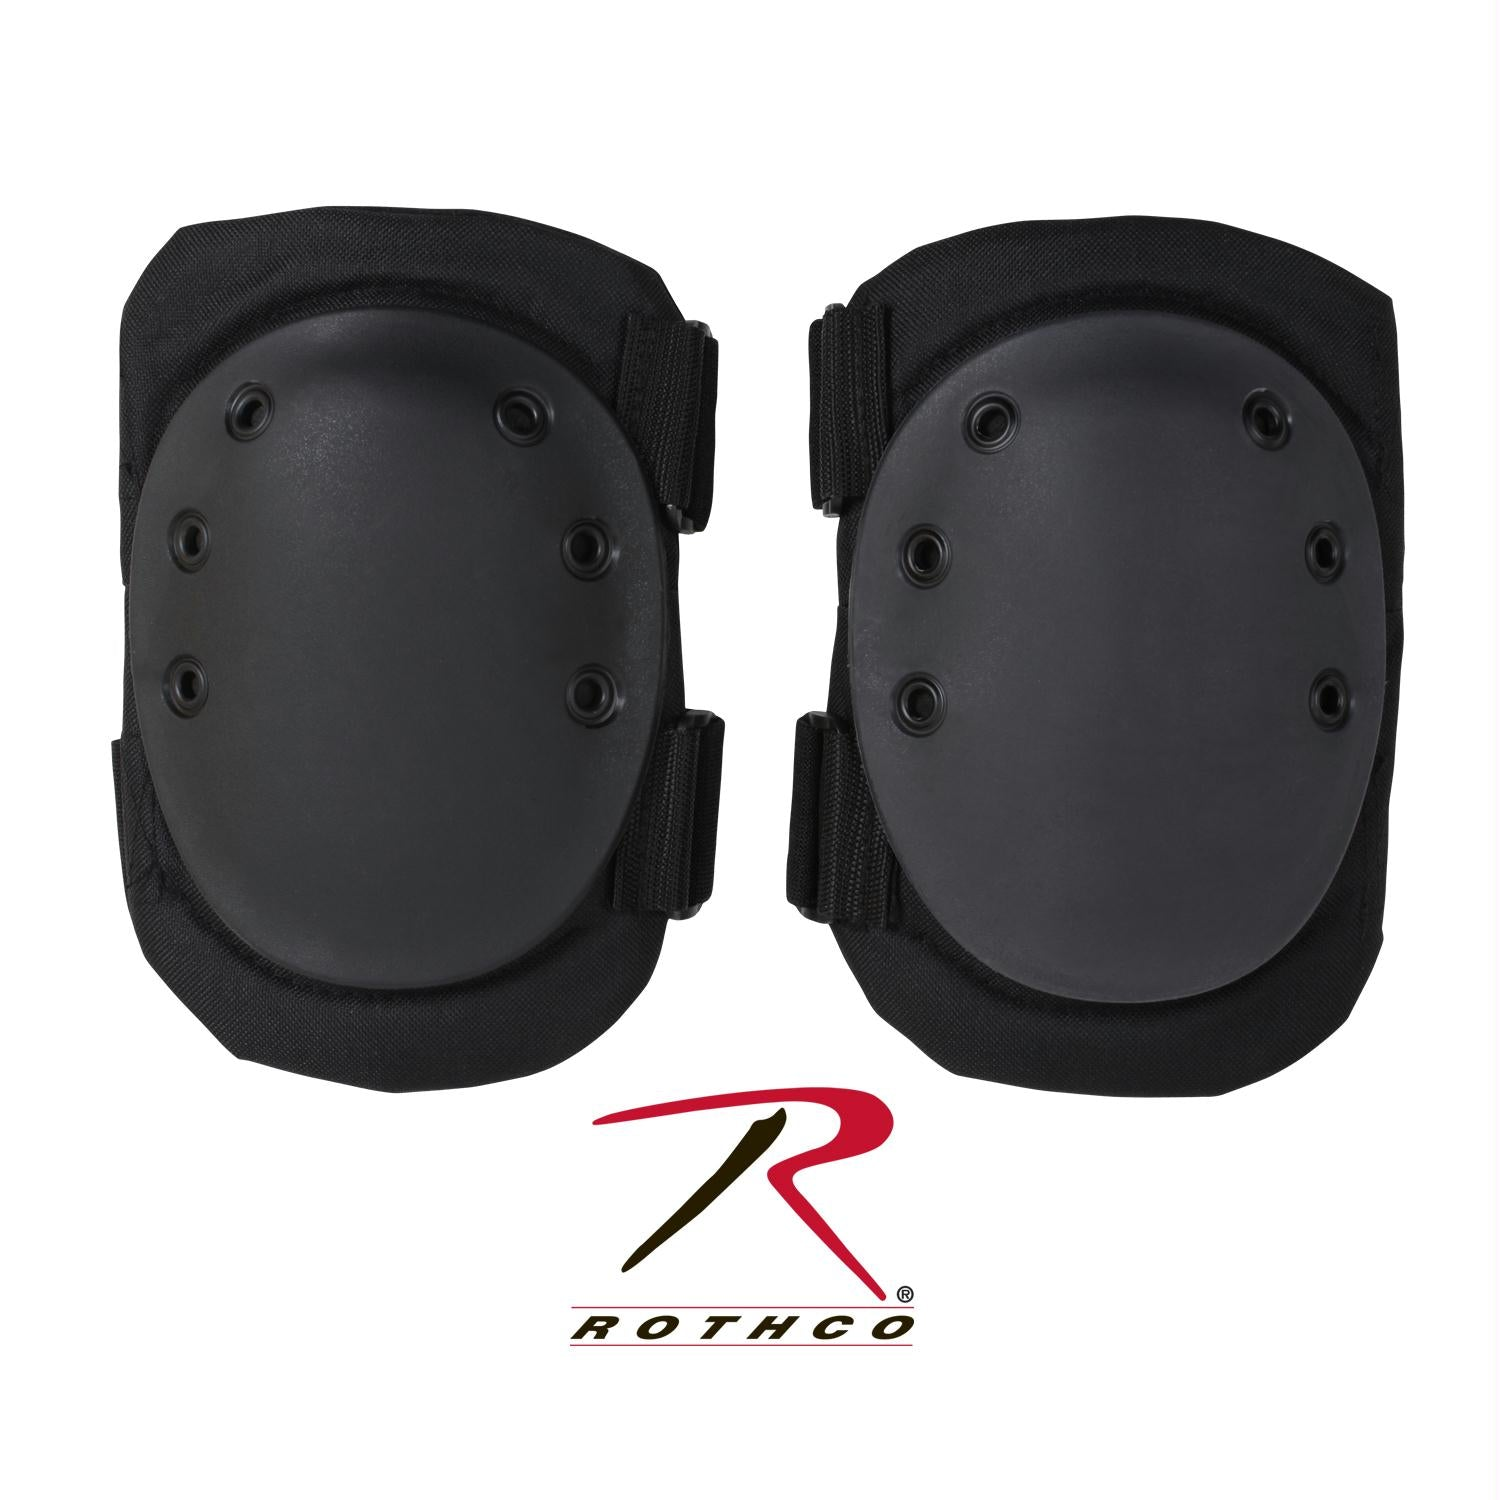 Rothco Tactical Protective Gear Knee Pads - Black